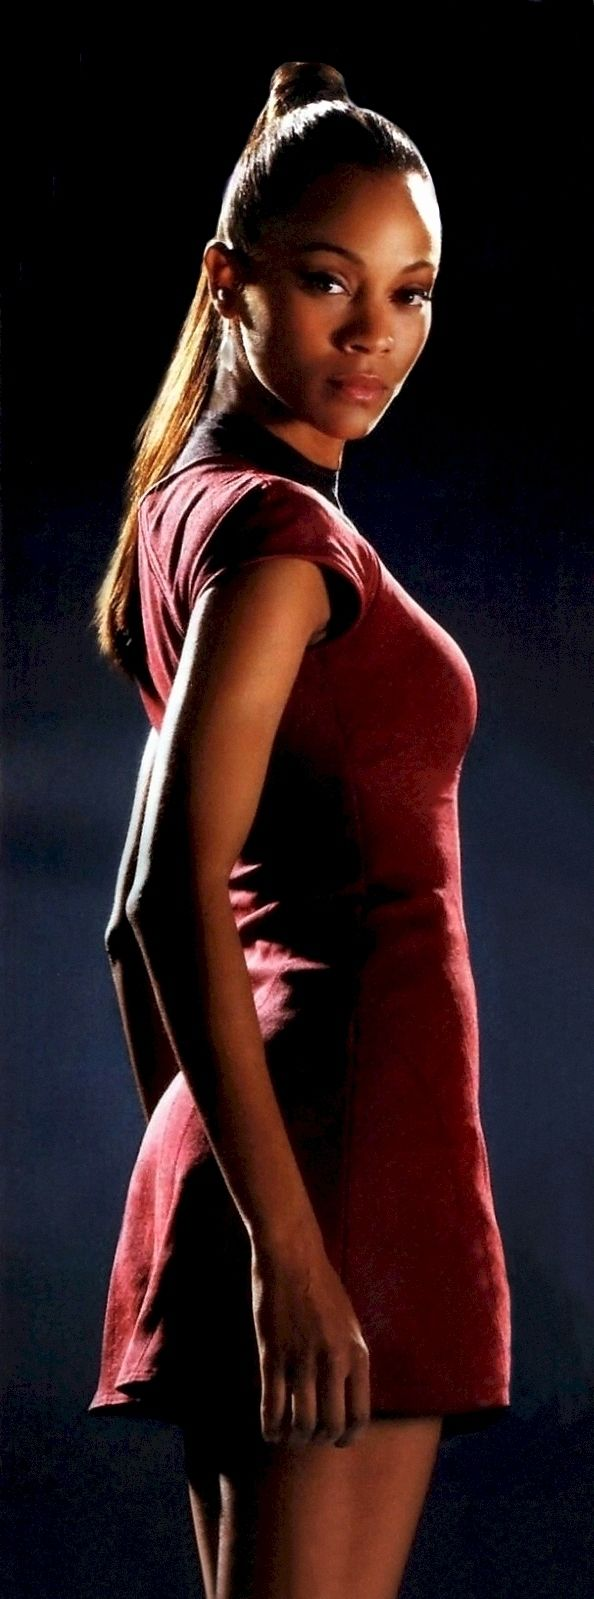 Zoë Saldana as Uhura in the 2009 film Star Trek